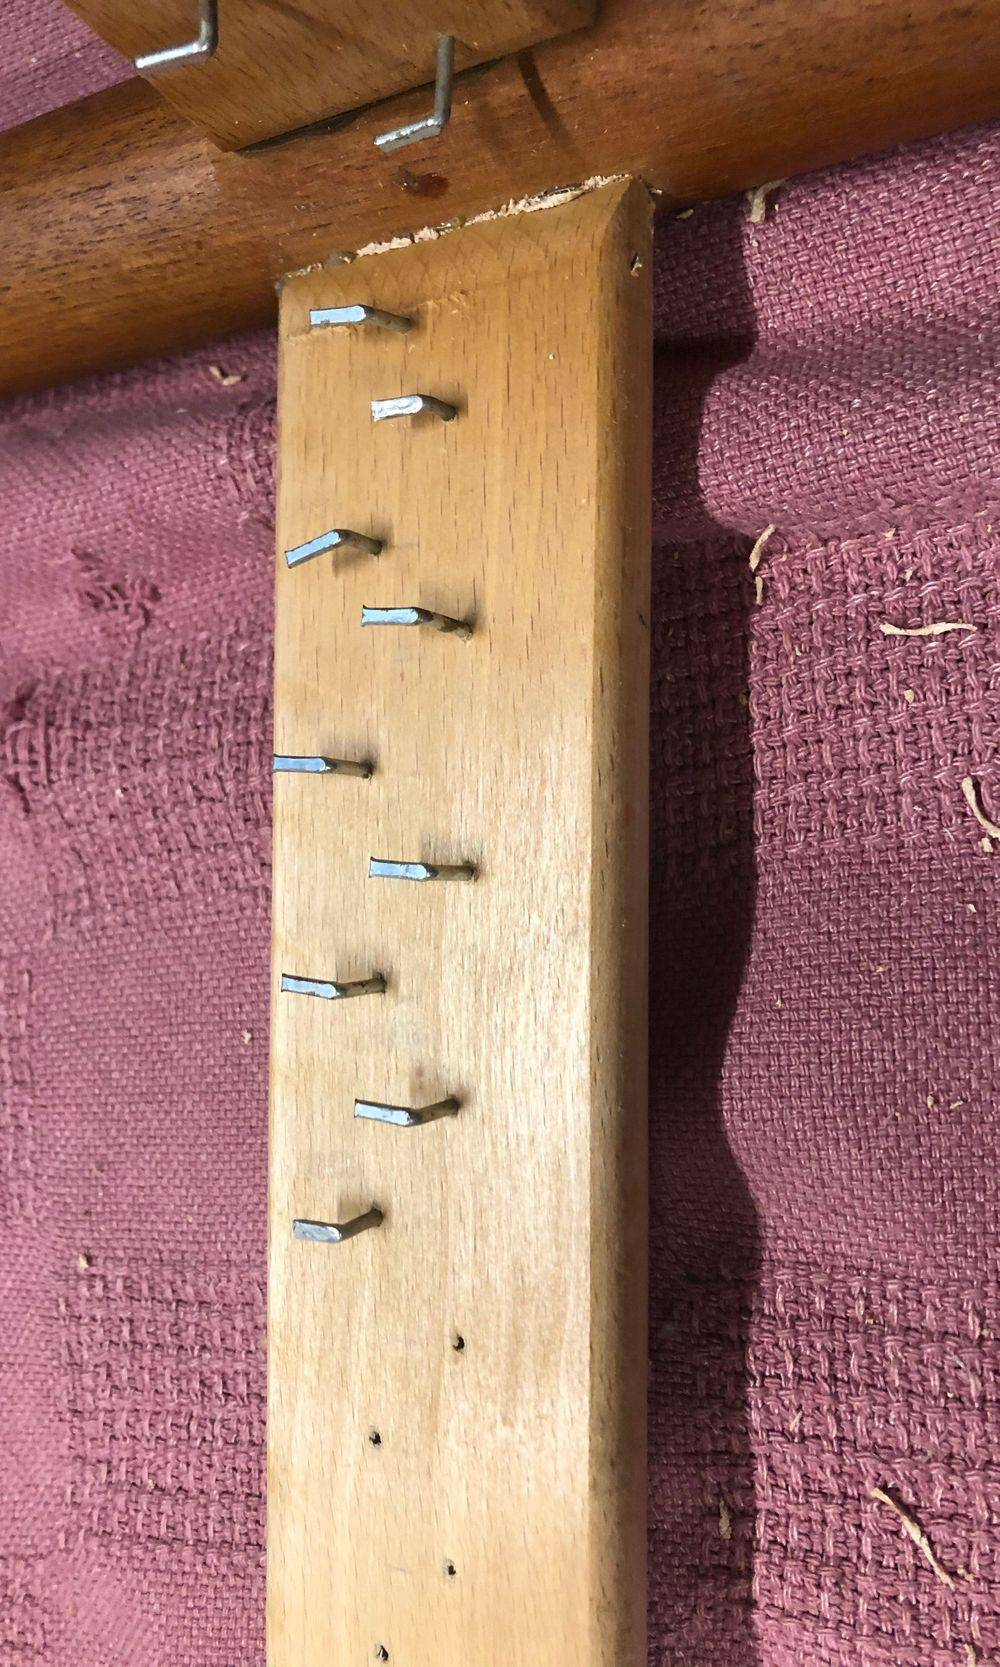 Pre-Drilled, Staggered, and Correctly Spaced Hook Nails